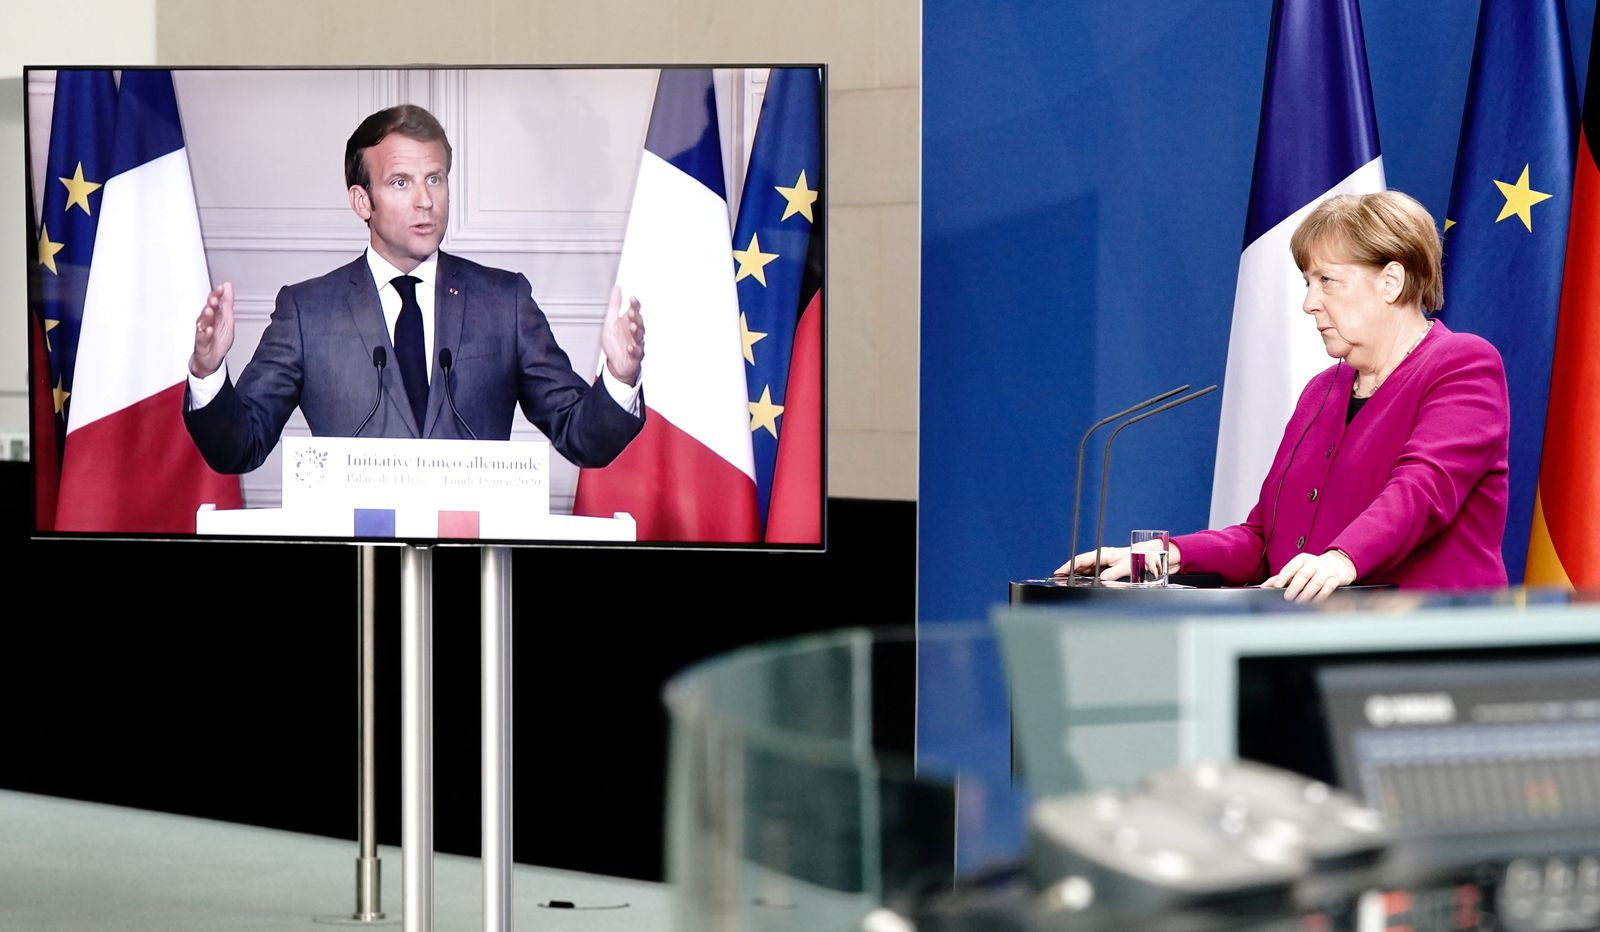 FILE PHOTO: German Chancellor Angela Merkel holds a joint video news conference with French President Emmanuel Macron